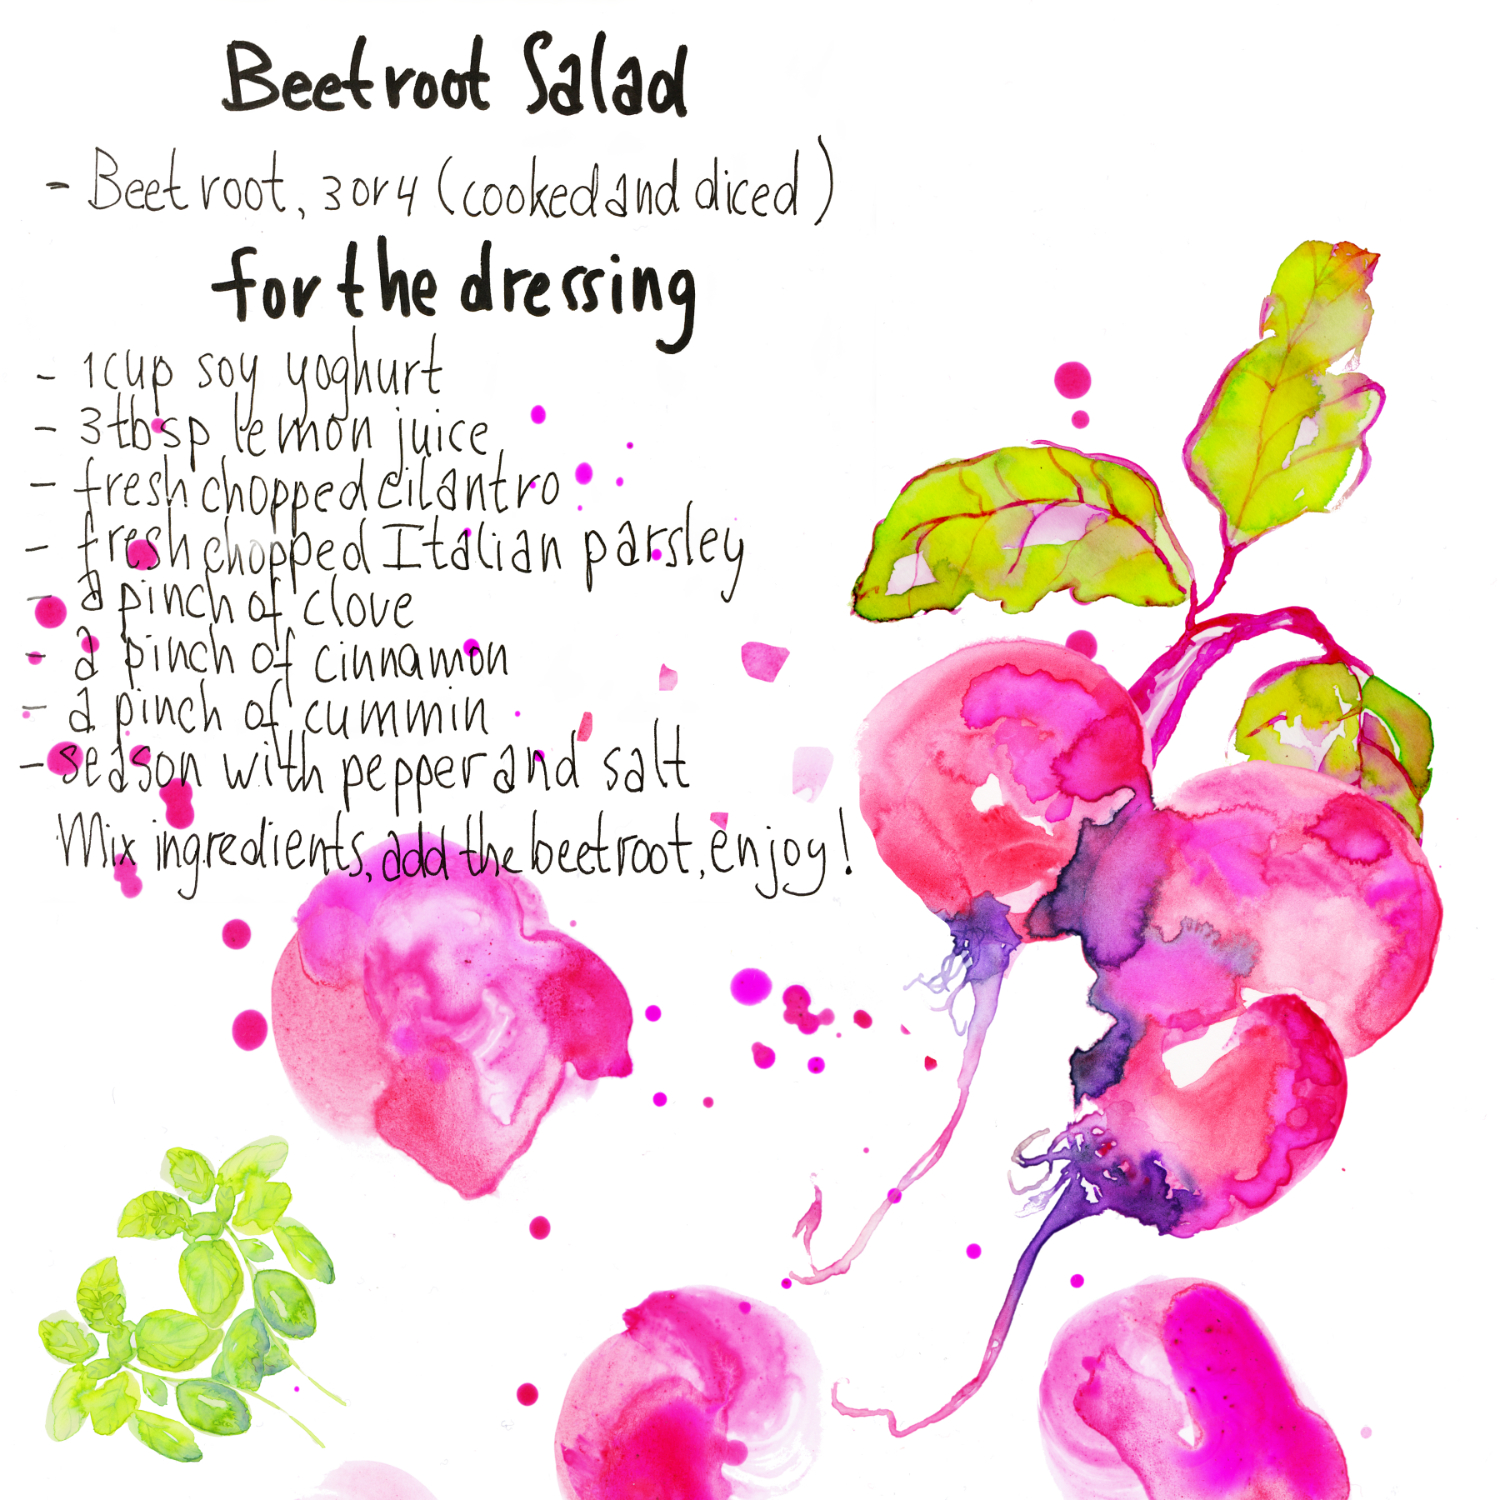 Vegan beet root salad recipe